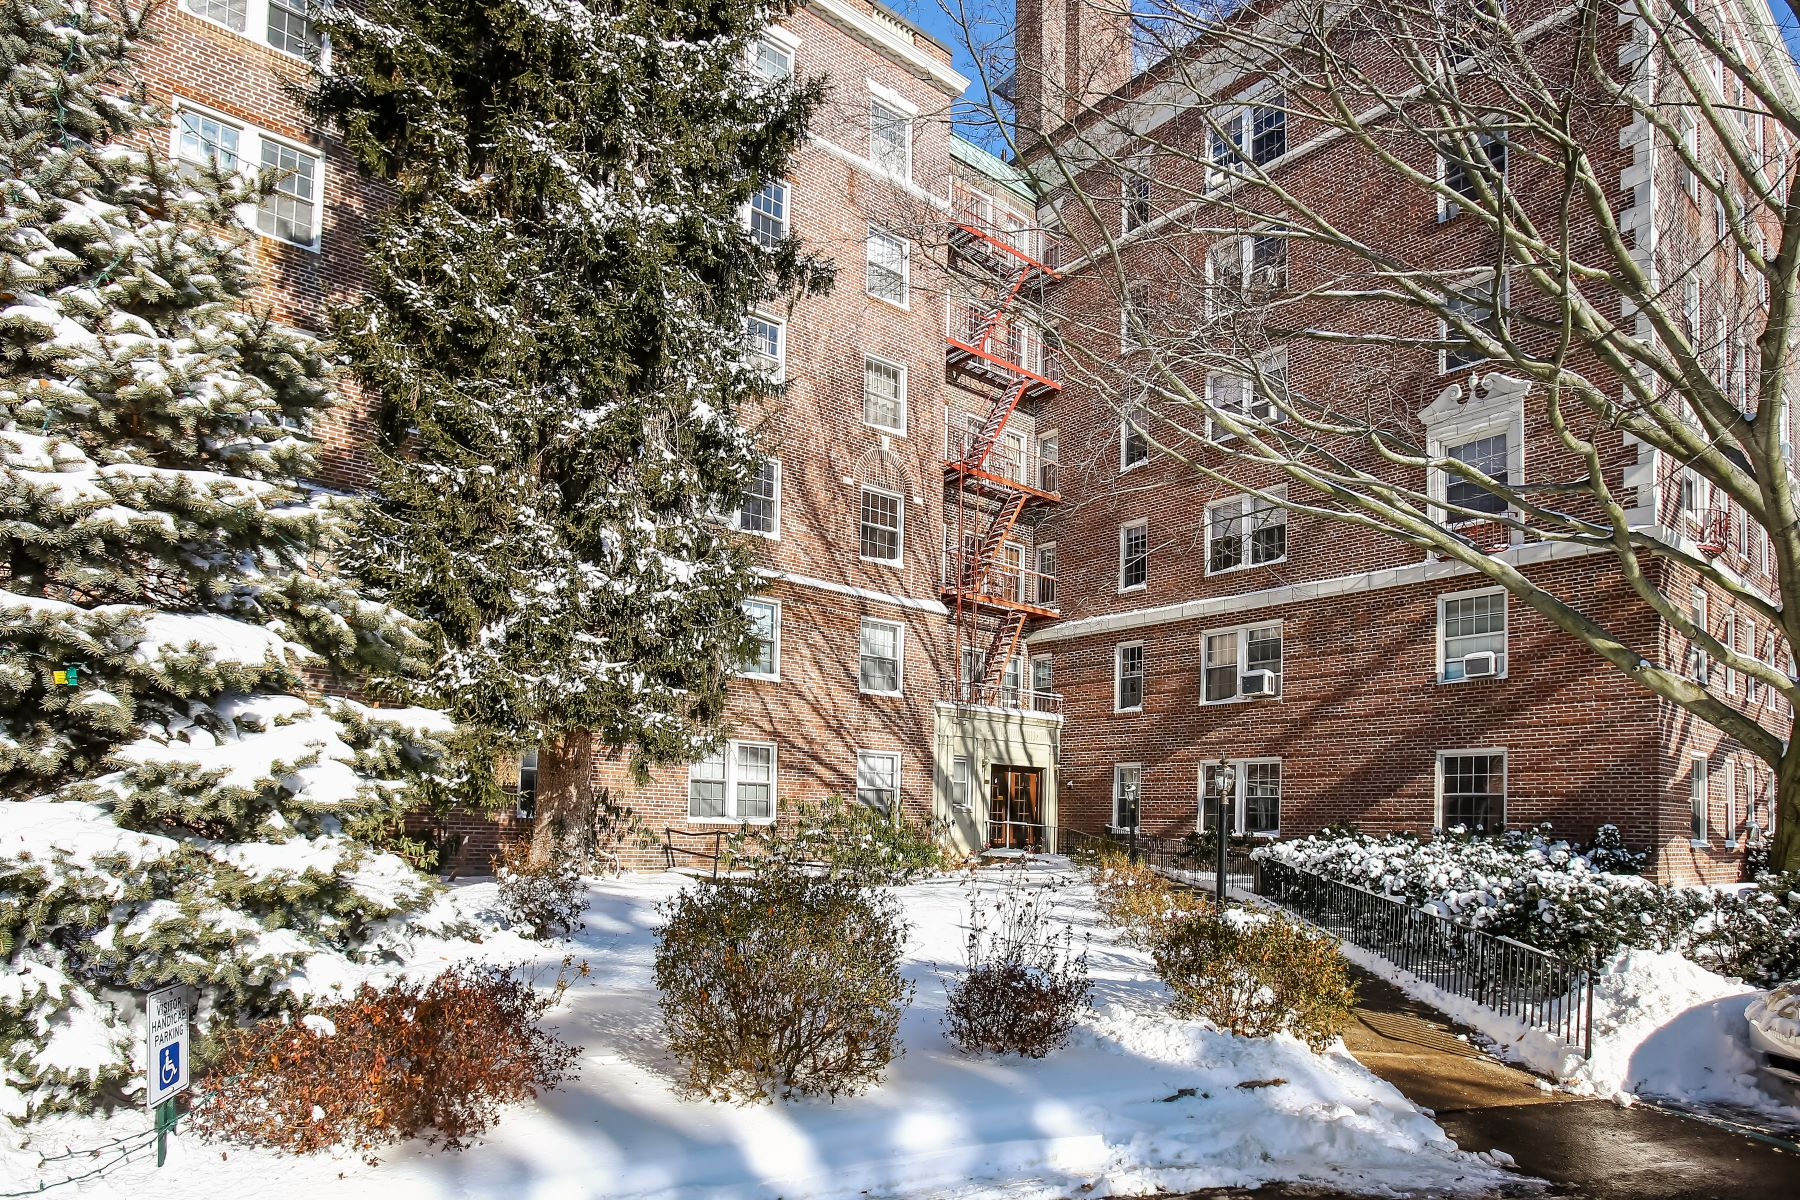 Co-op for Sale at Pre-War Spacious Mid-Rise! 300 South Broadway 4-G, Tarrytown, New York, 10591 United States